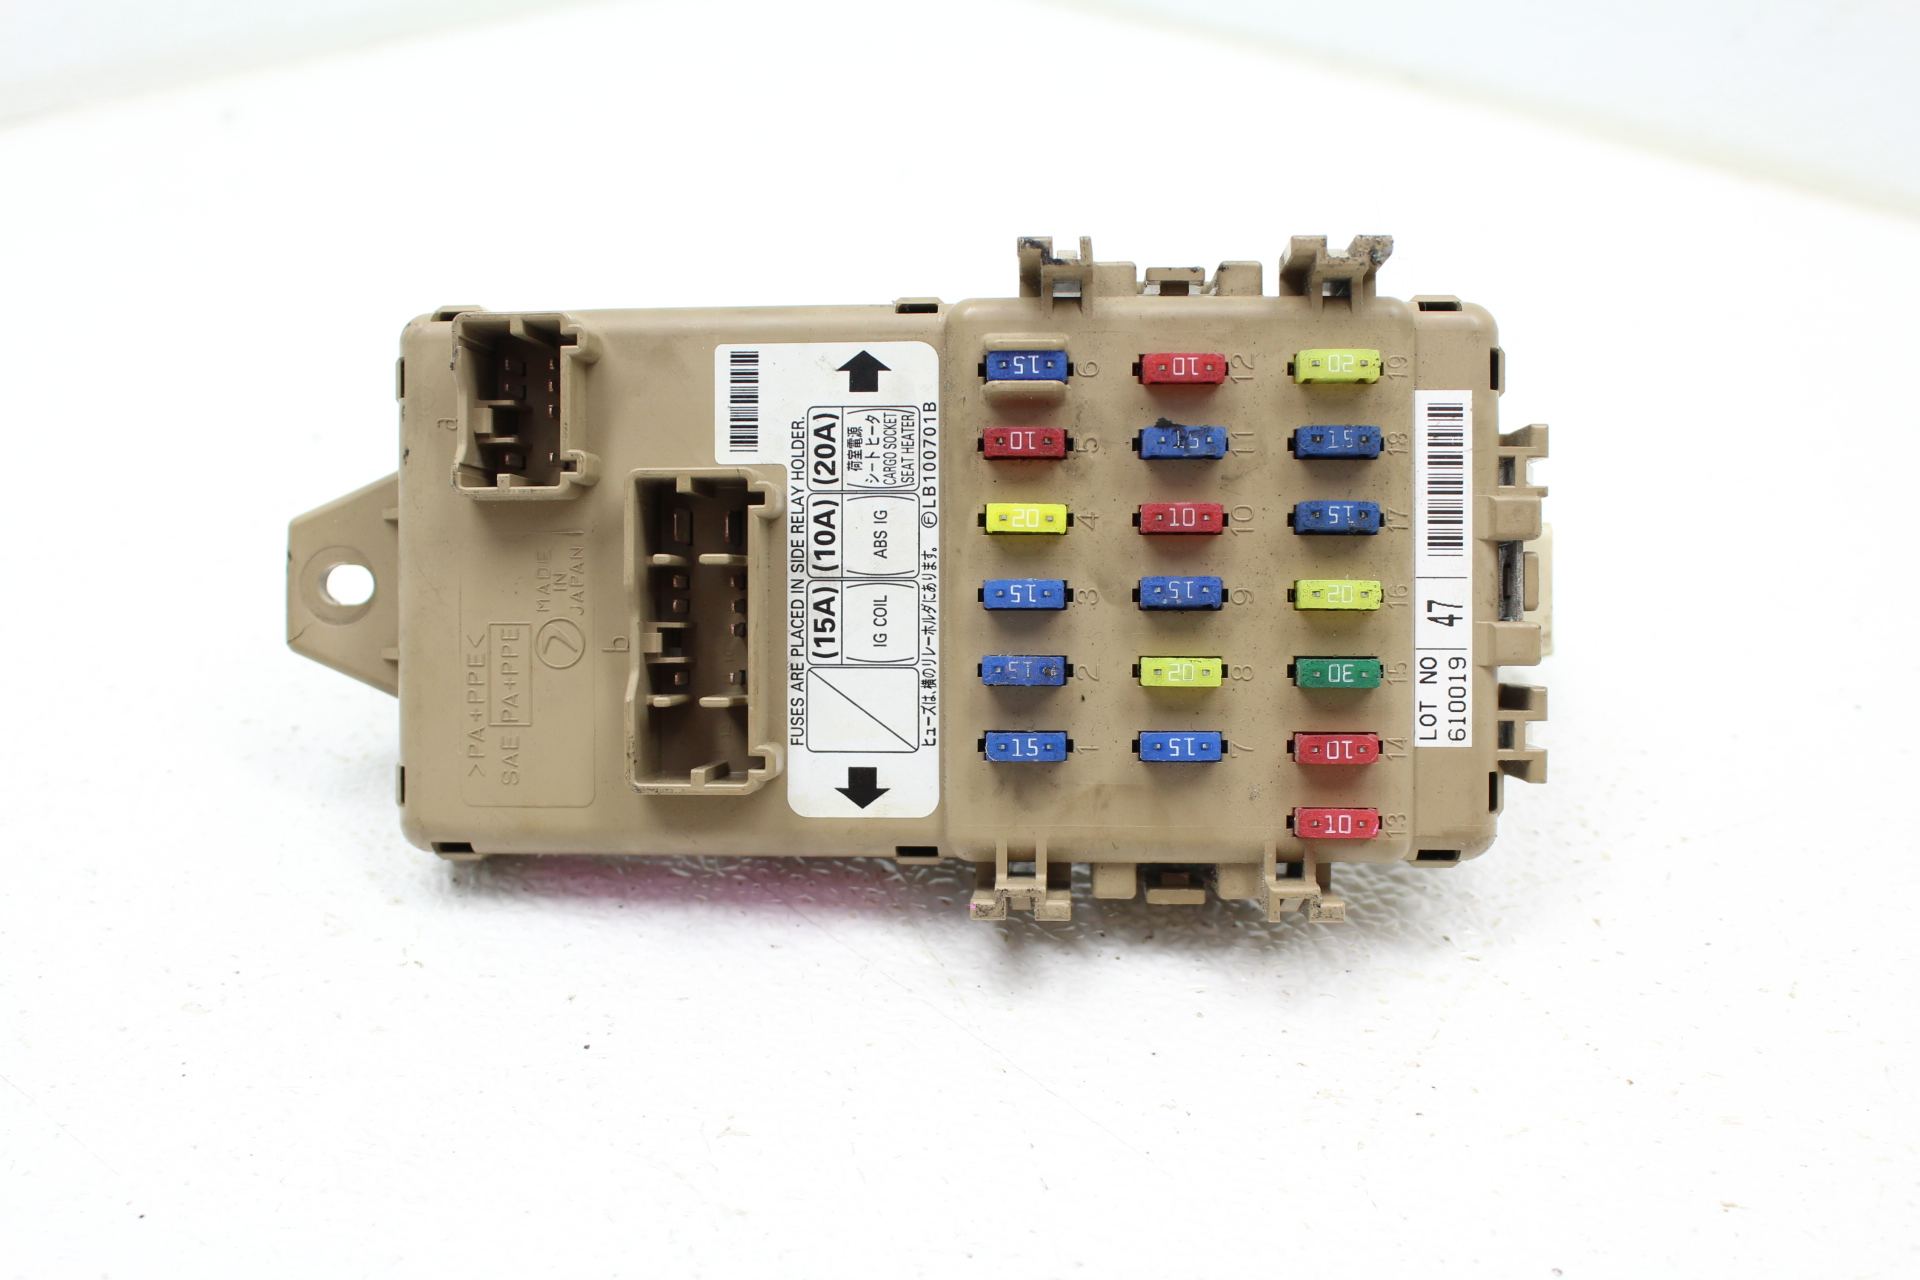 2006-2007 SUBARU IMPREZA WRX STI FUSE BOX JUNCTION PANEL ...